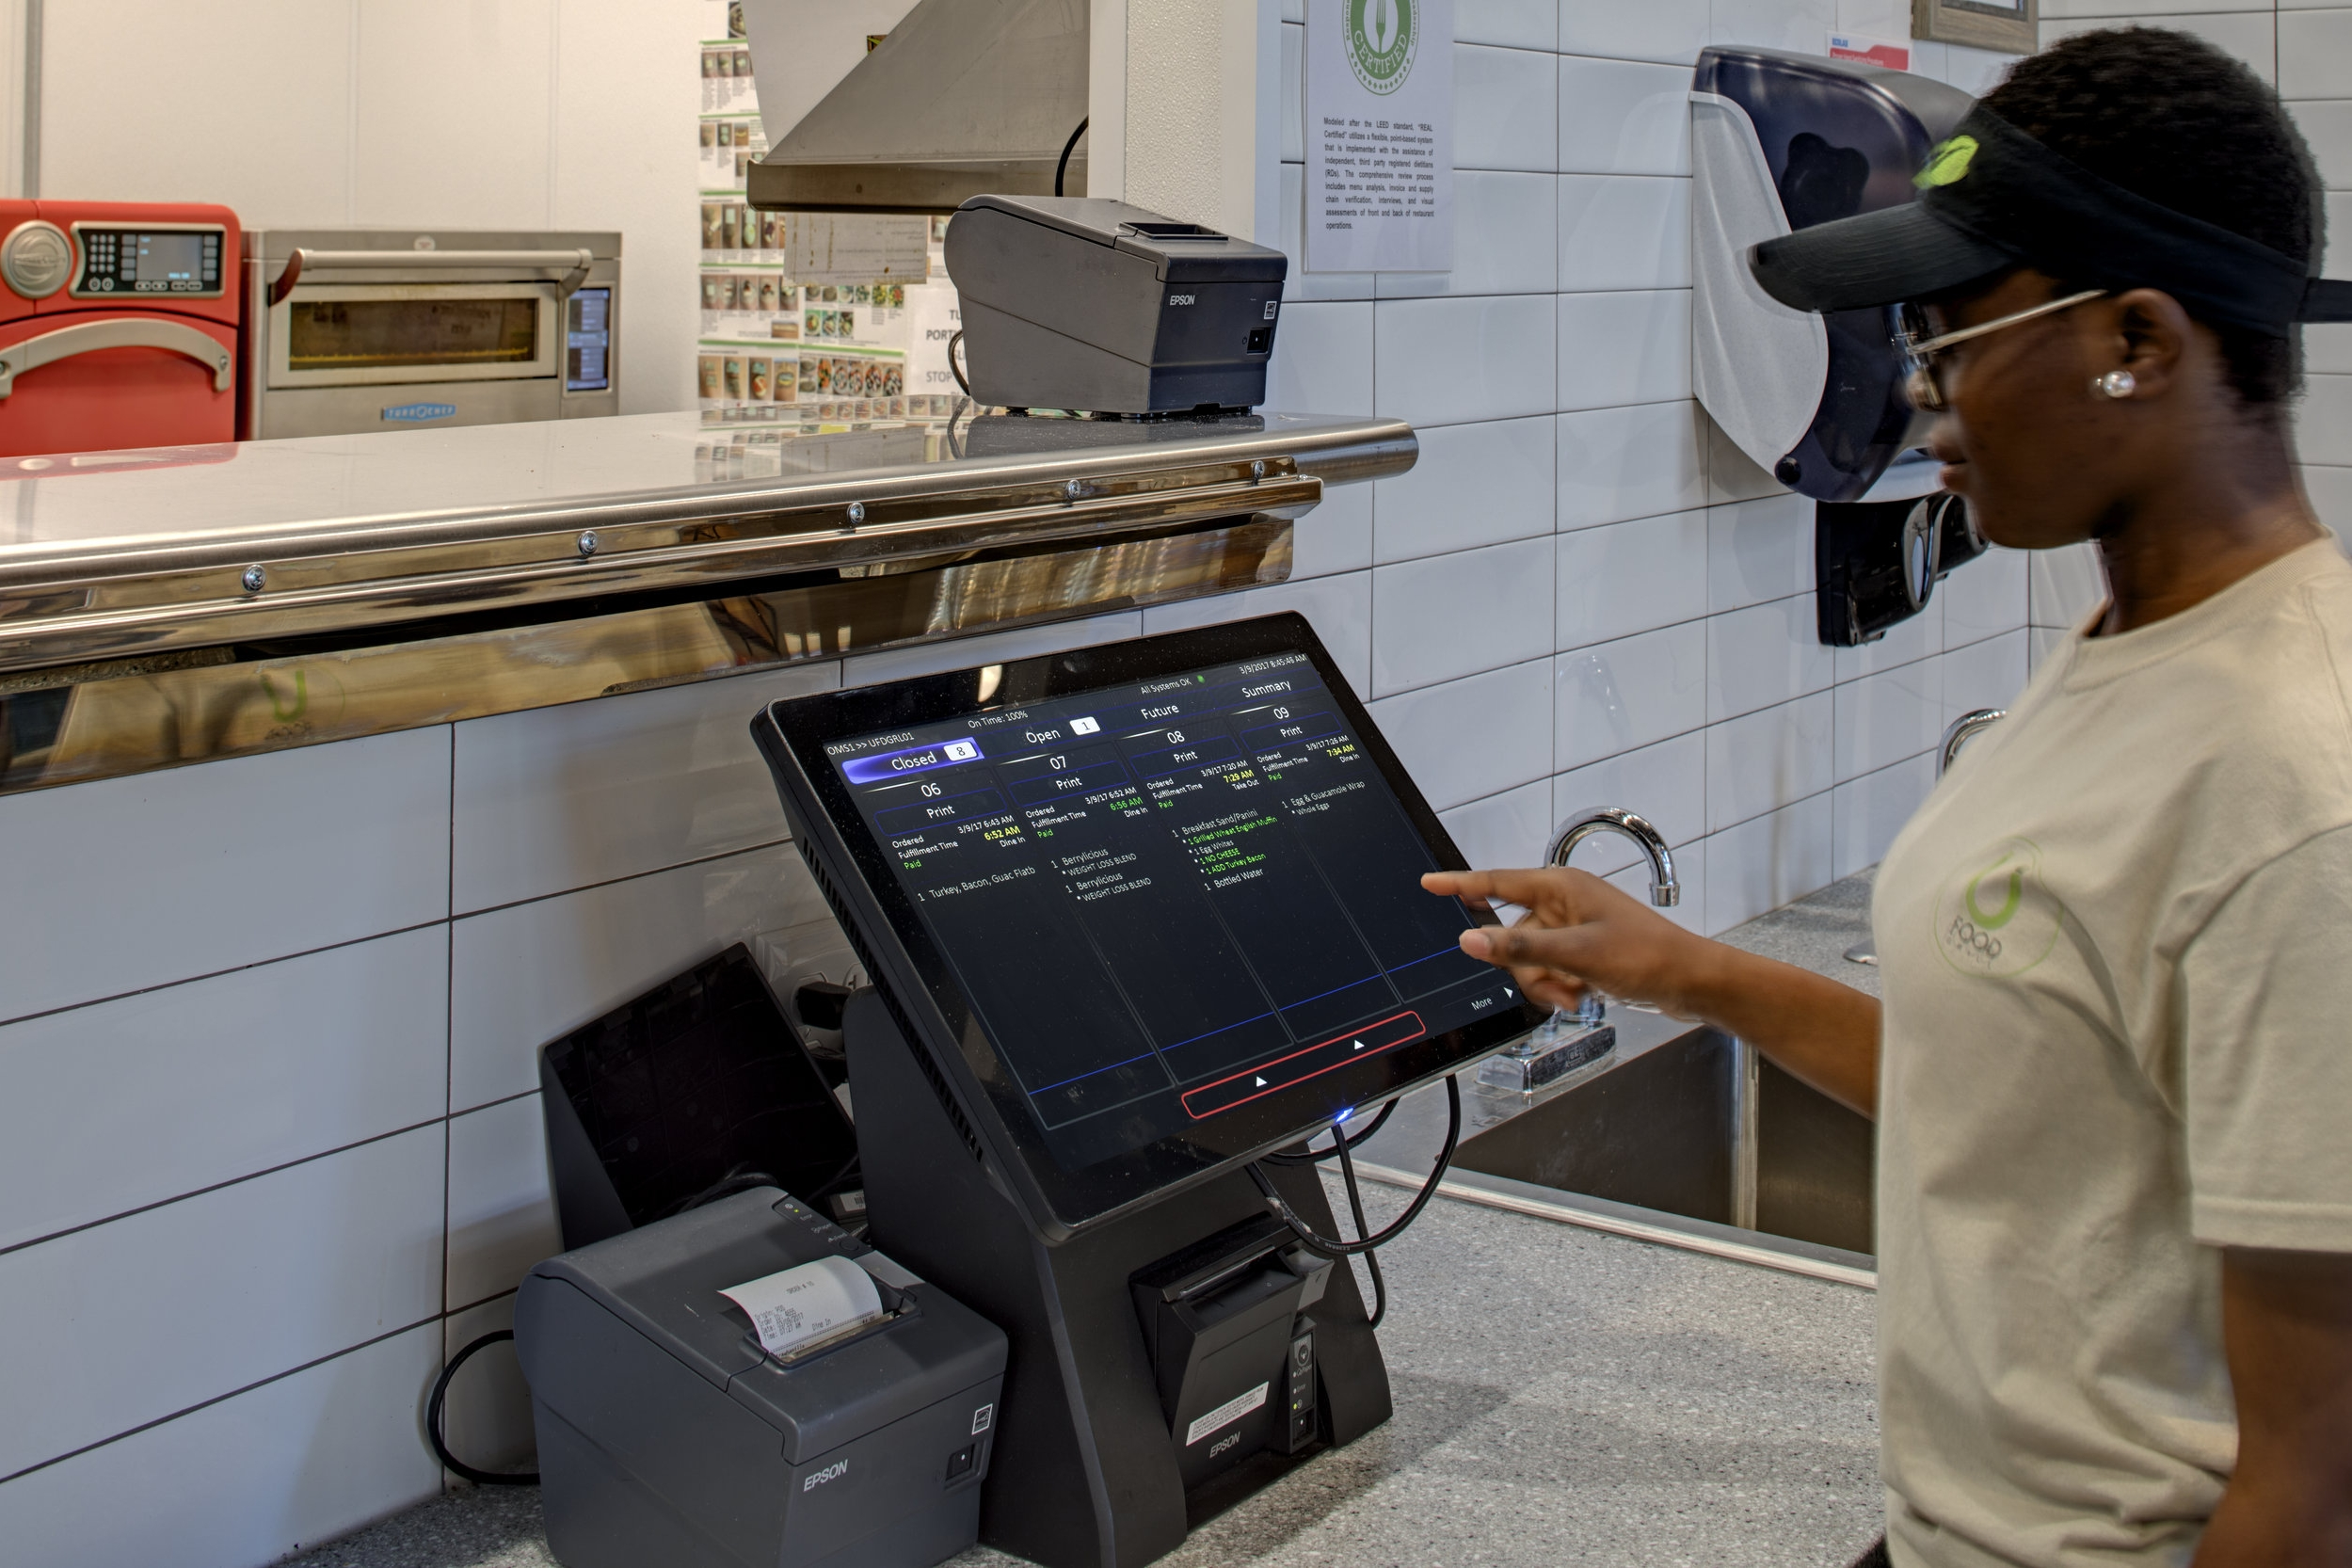 Keep an eye on all orders. - All your open, closed, and future orders are a tap away, whether they come from your POS, Self-Order Kiosks, Mobile Ordering, or Touchscreen Drive-Thru.